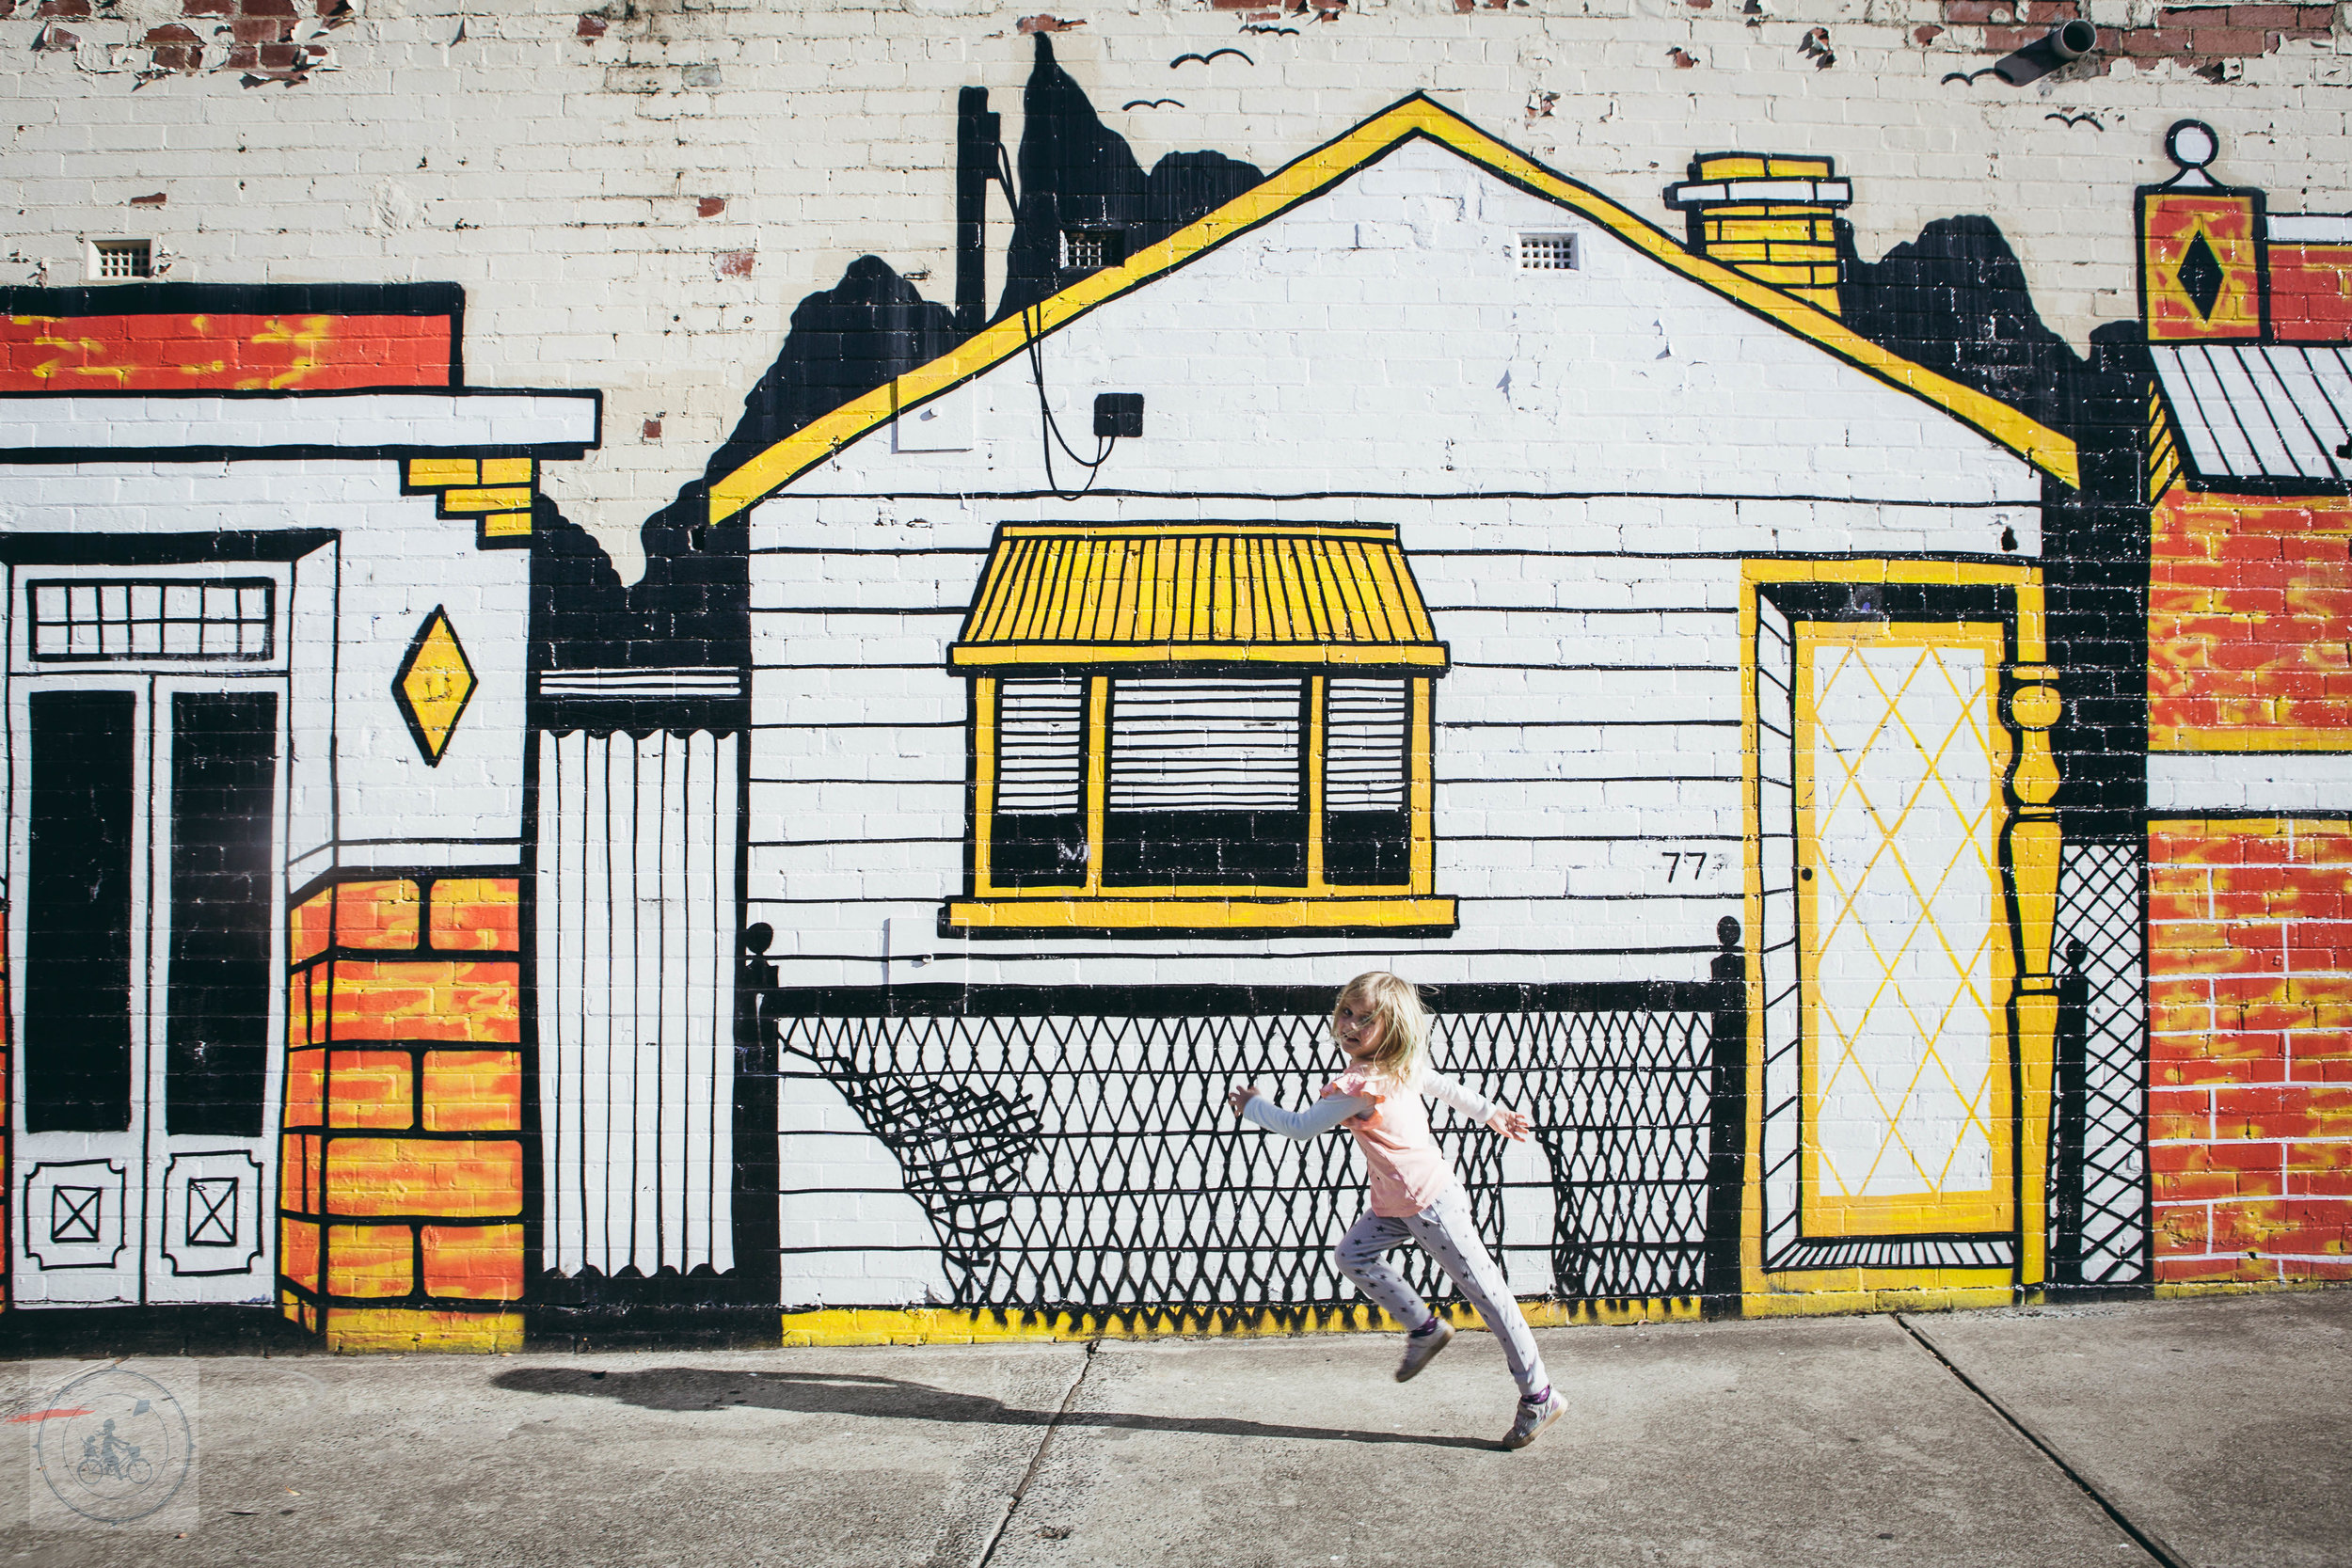 Footscray Wall Mamma Knows West (1 of 2).jpg